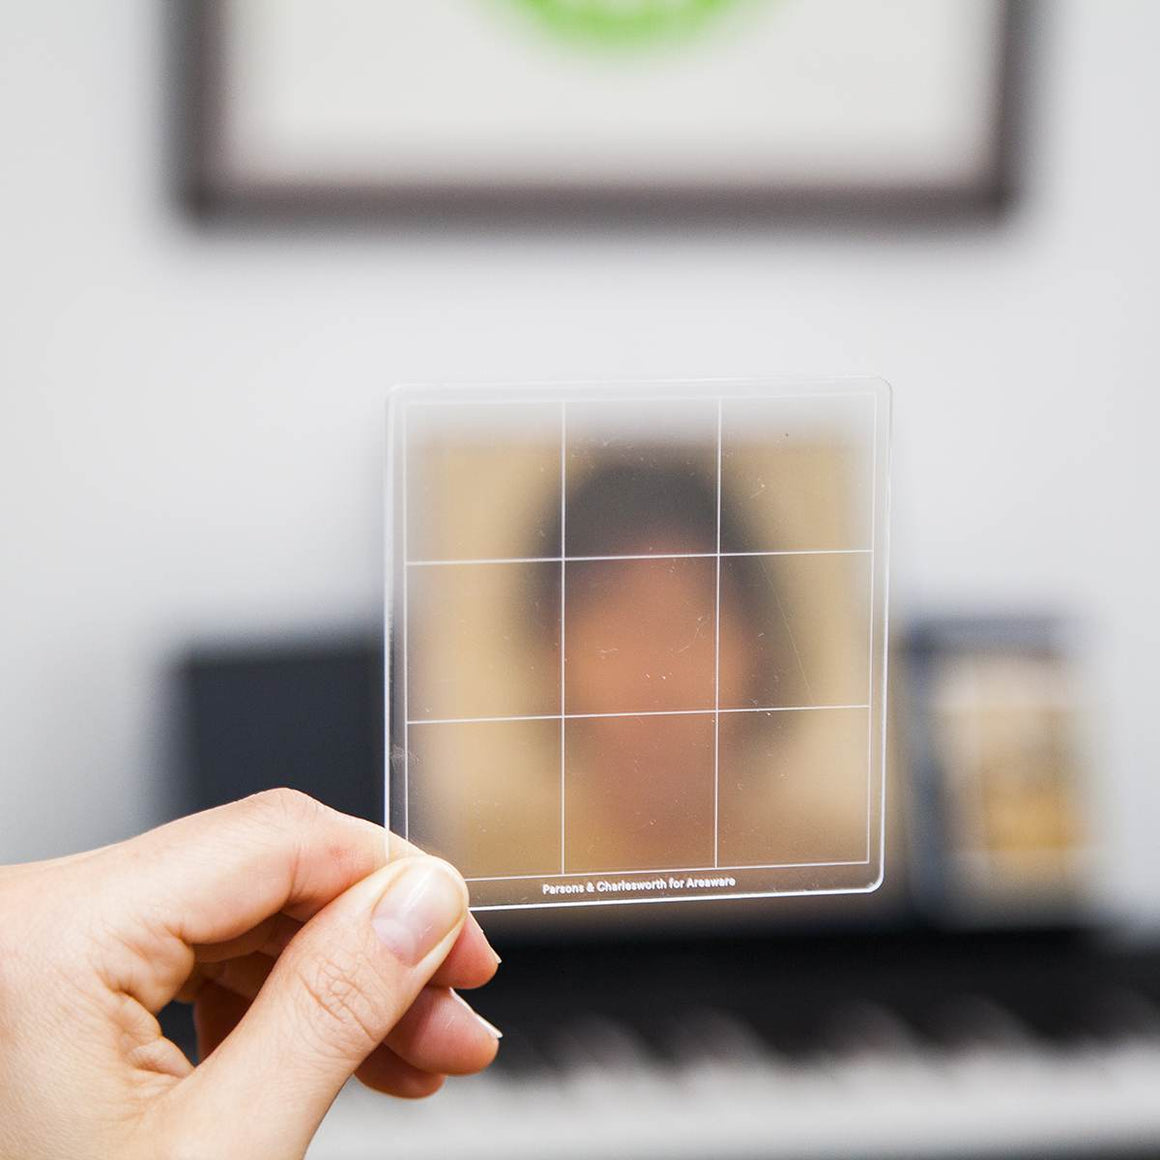 An translucent Artist tool marked with the Rule of thirds ratio. Shown being held up in front of a photo portrait